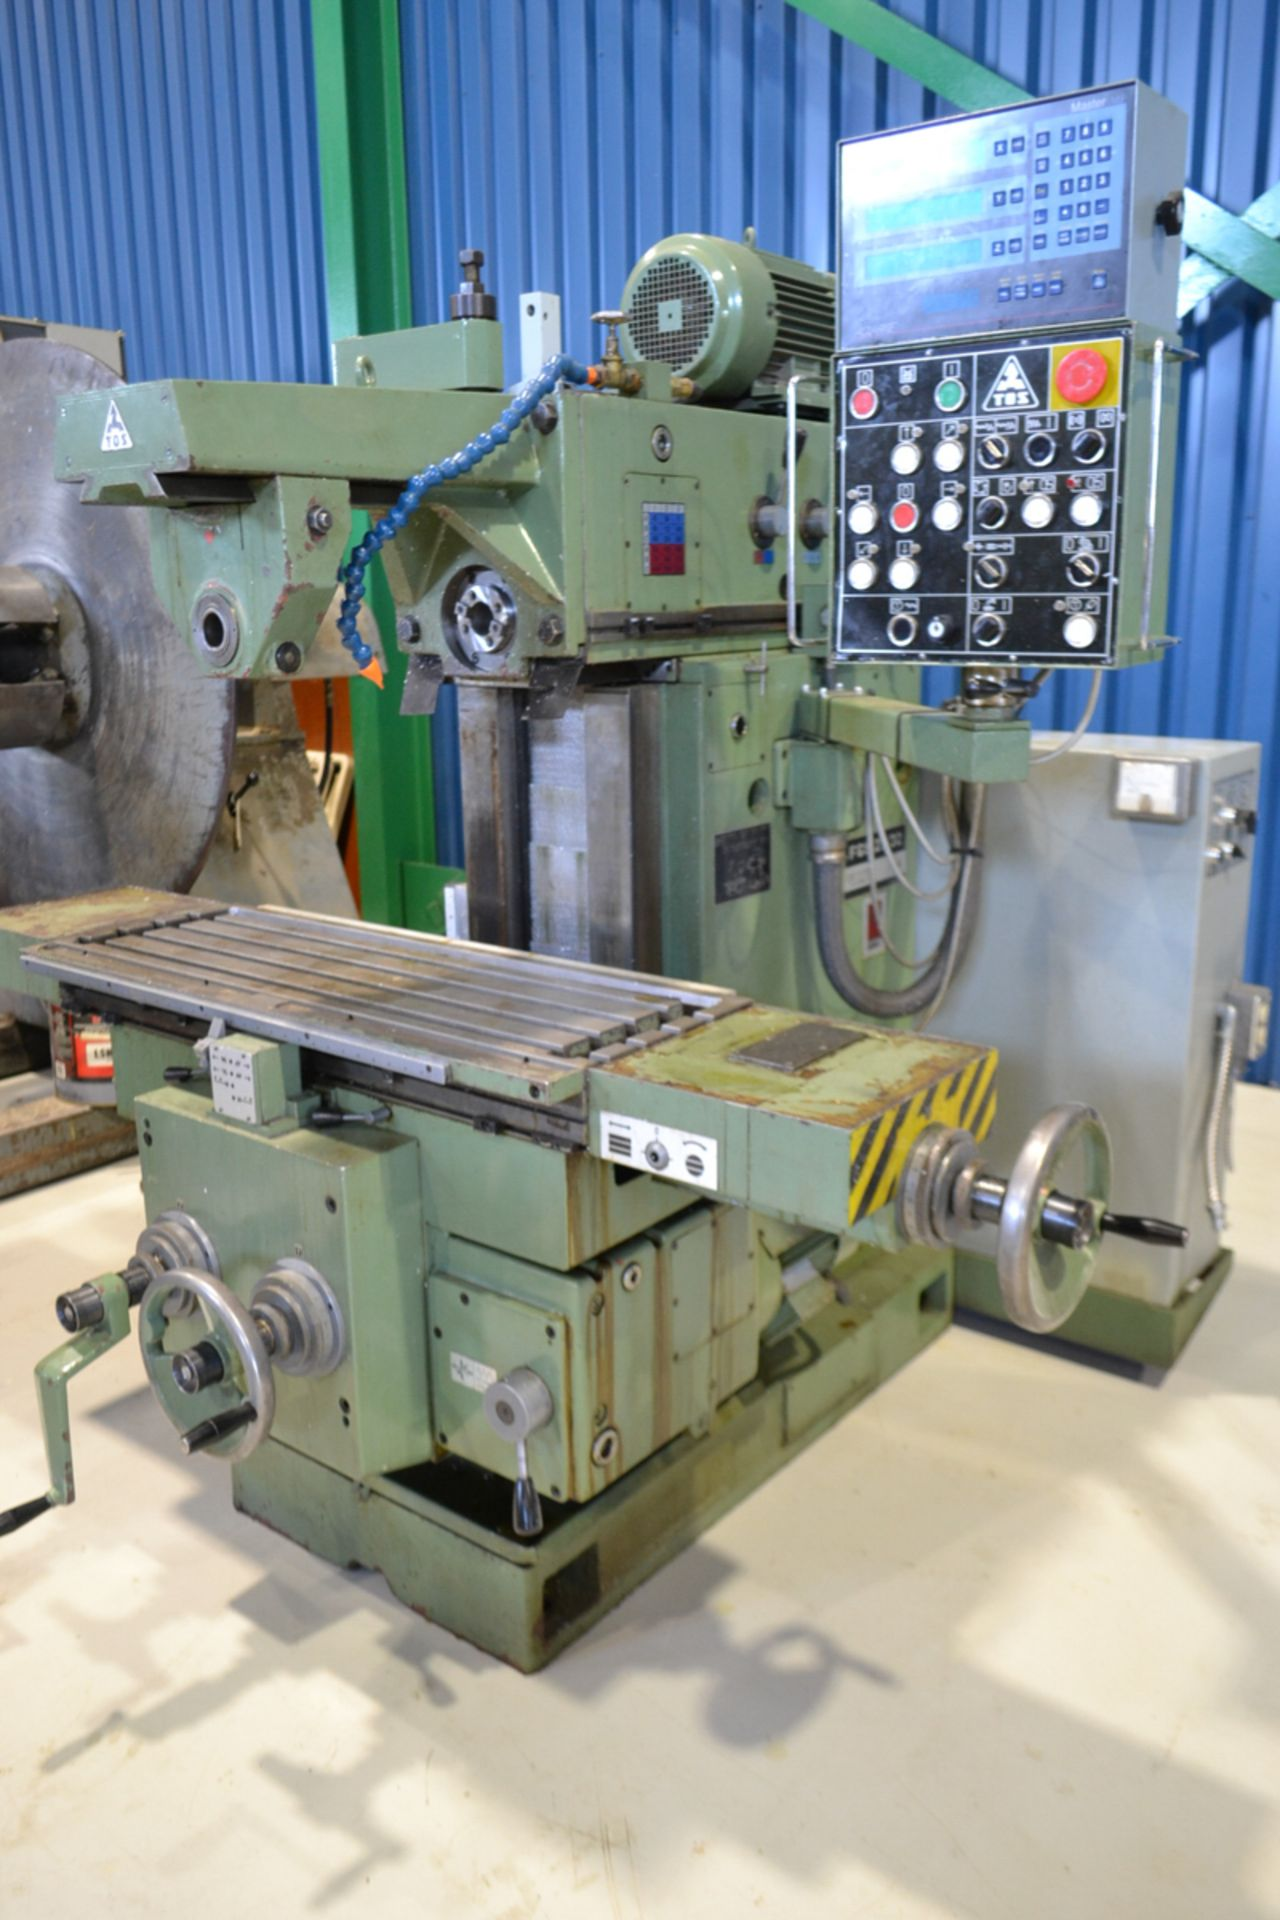 """TOS MILLING (HORZ) MOD. FGS25.32, 15"""" X 39"""" TABLE, S/N: 251300199 - Image 5 of 5"""